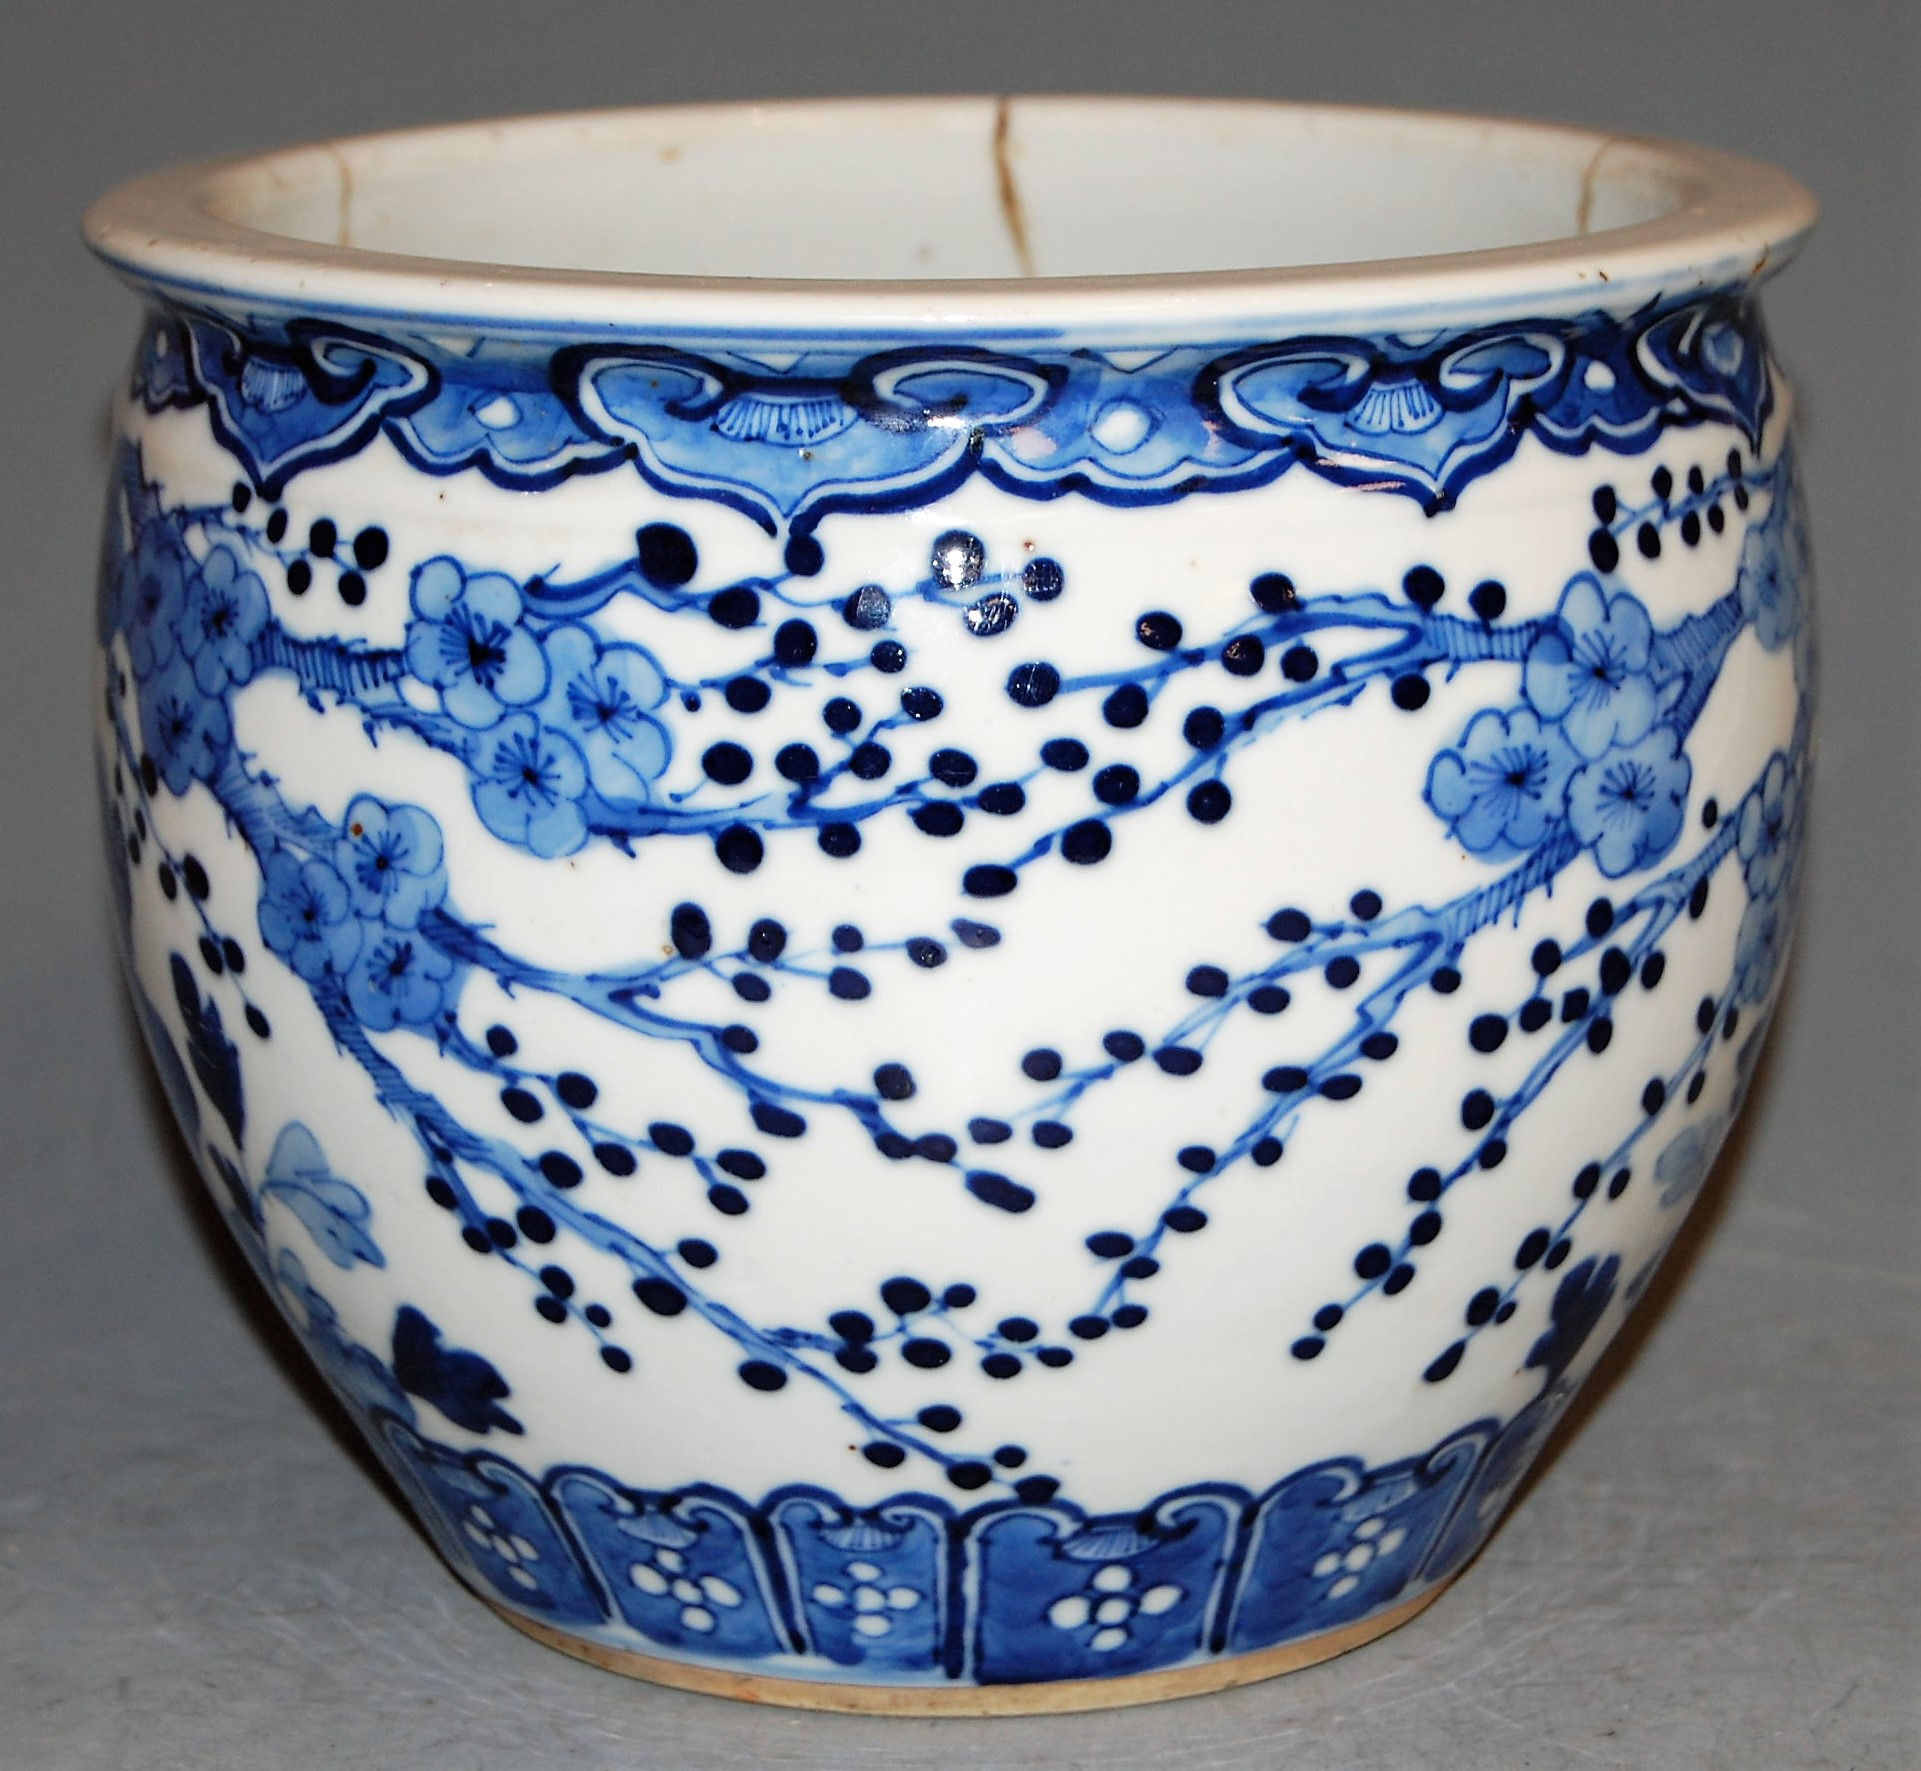 Lot 29 - An 18th century Chinese blue and white jardinière, underglaze blue decorated with birds amongst